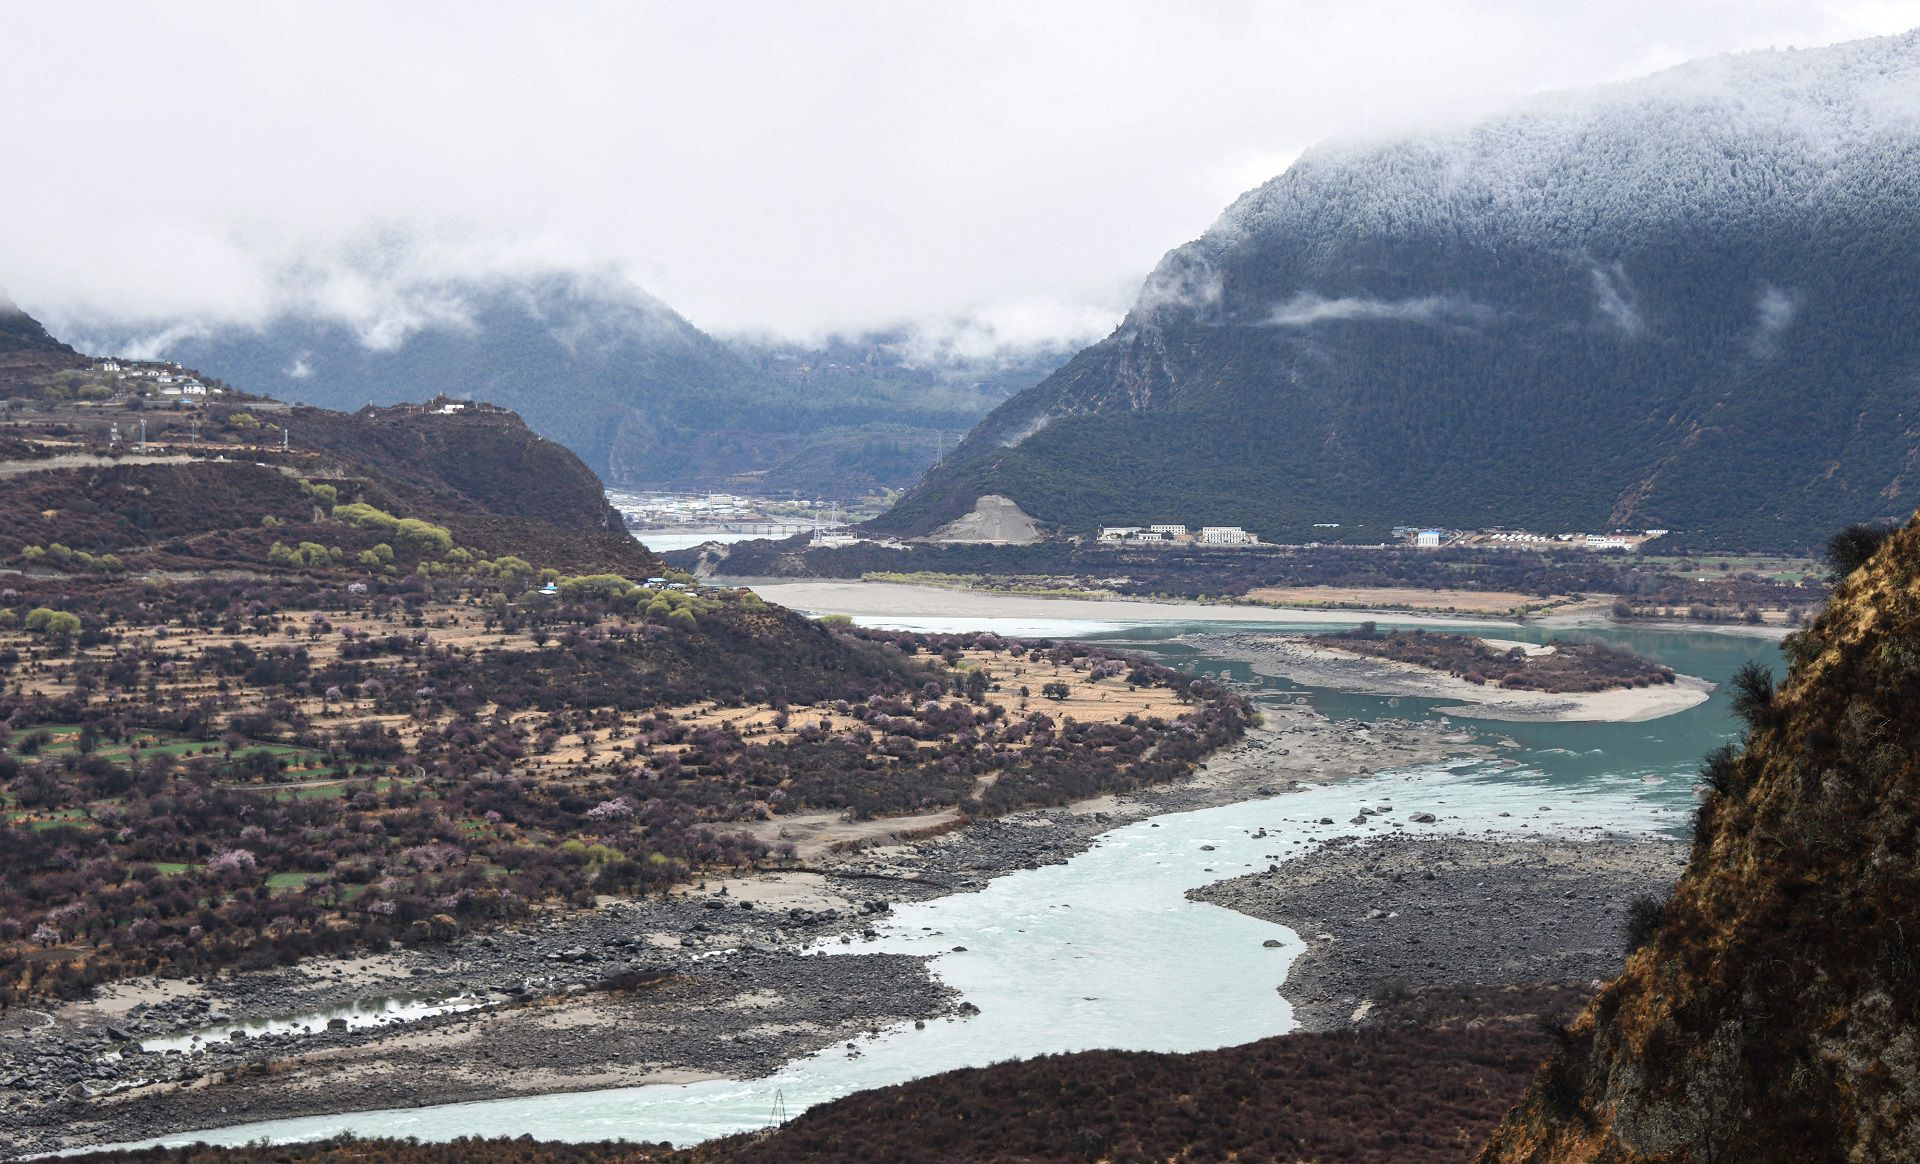 This photo taken on March 28, 2021 shows the Yarlung Zangbo Grand Canyon in Nyingchi city, in China's western Tibet Autonomous Region. - China is planning a mega dam in Tibet able to produce triple the electricity generated by the Three Gorges -- the world's largest power station -- stoking fears among environmentalists and in neighbouring India. (Photo by STR / AFP) / China OUT / TO GO WITH AFP STORY CHINA-ENVIRONMENT-TIBET-POLITICS-INDIA,FOCUS BY PATRICK BAERT AND BHUVAN BAGGA